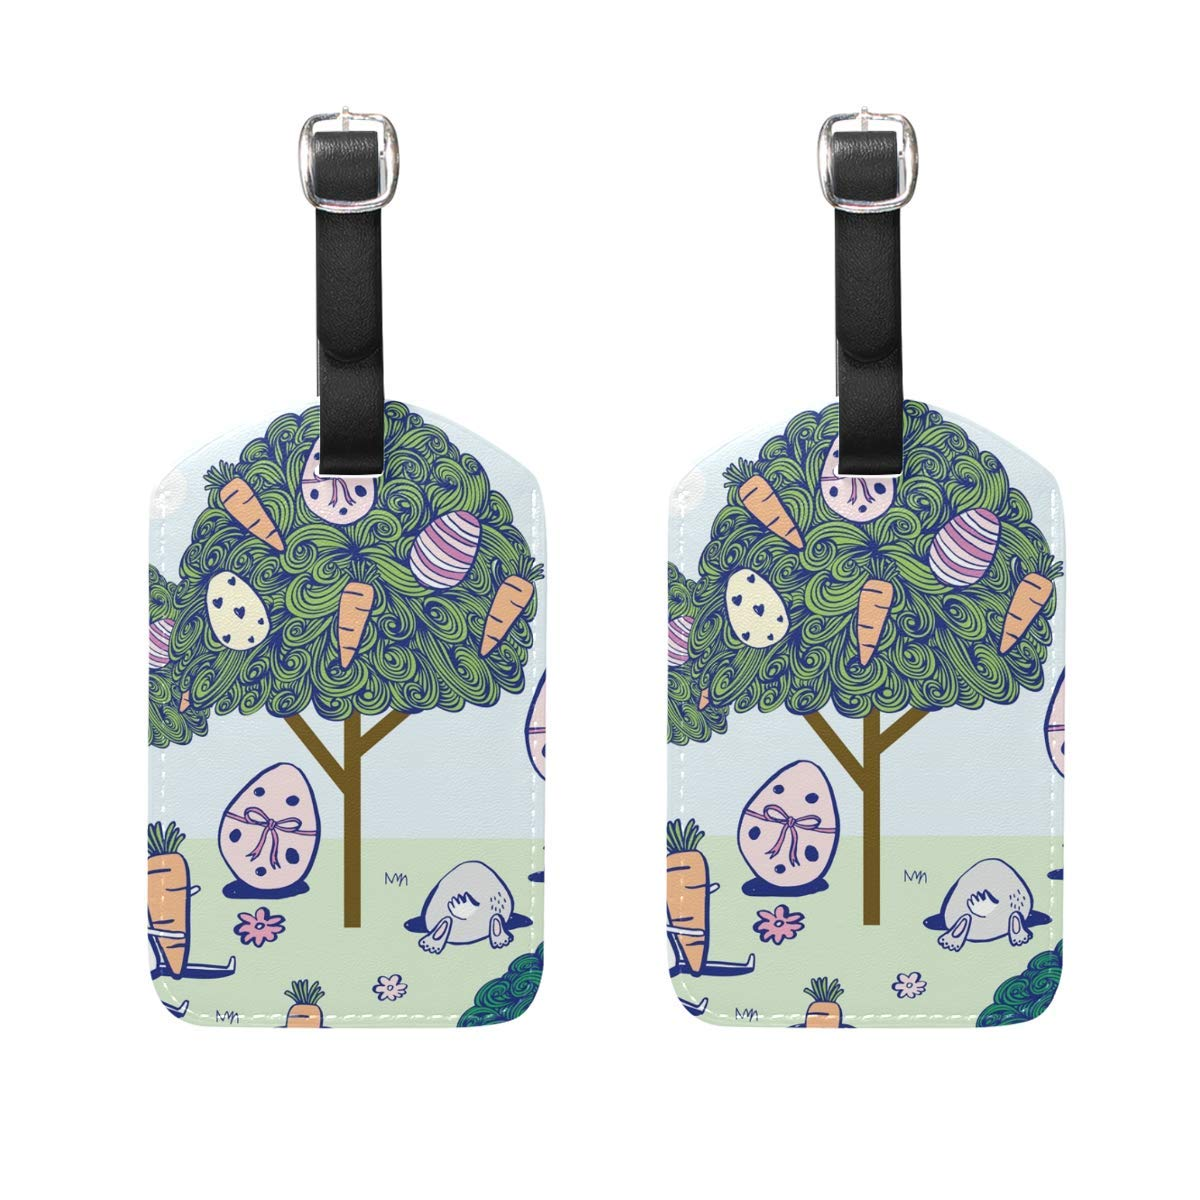 FunnyToiletLidCoverBB Easter Bunny Rabbit Egg Pattern Black Luggage Tag Women Men Personalized Kid Set of 2 Suitcase Label Travel ID Lady Handbag Tag with Buckle Leather